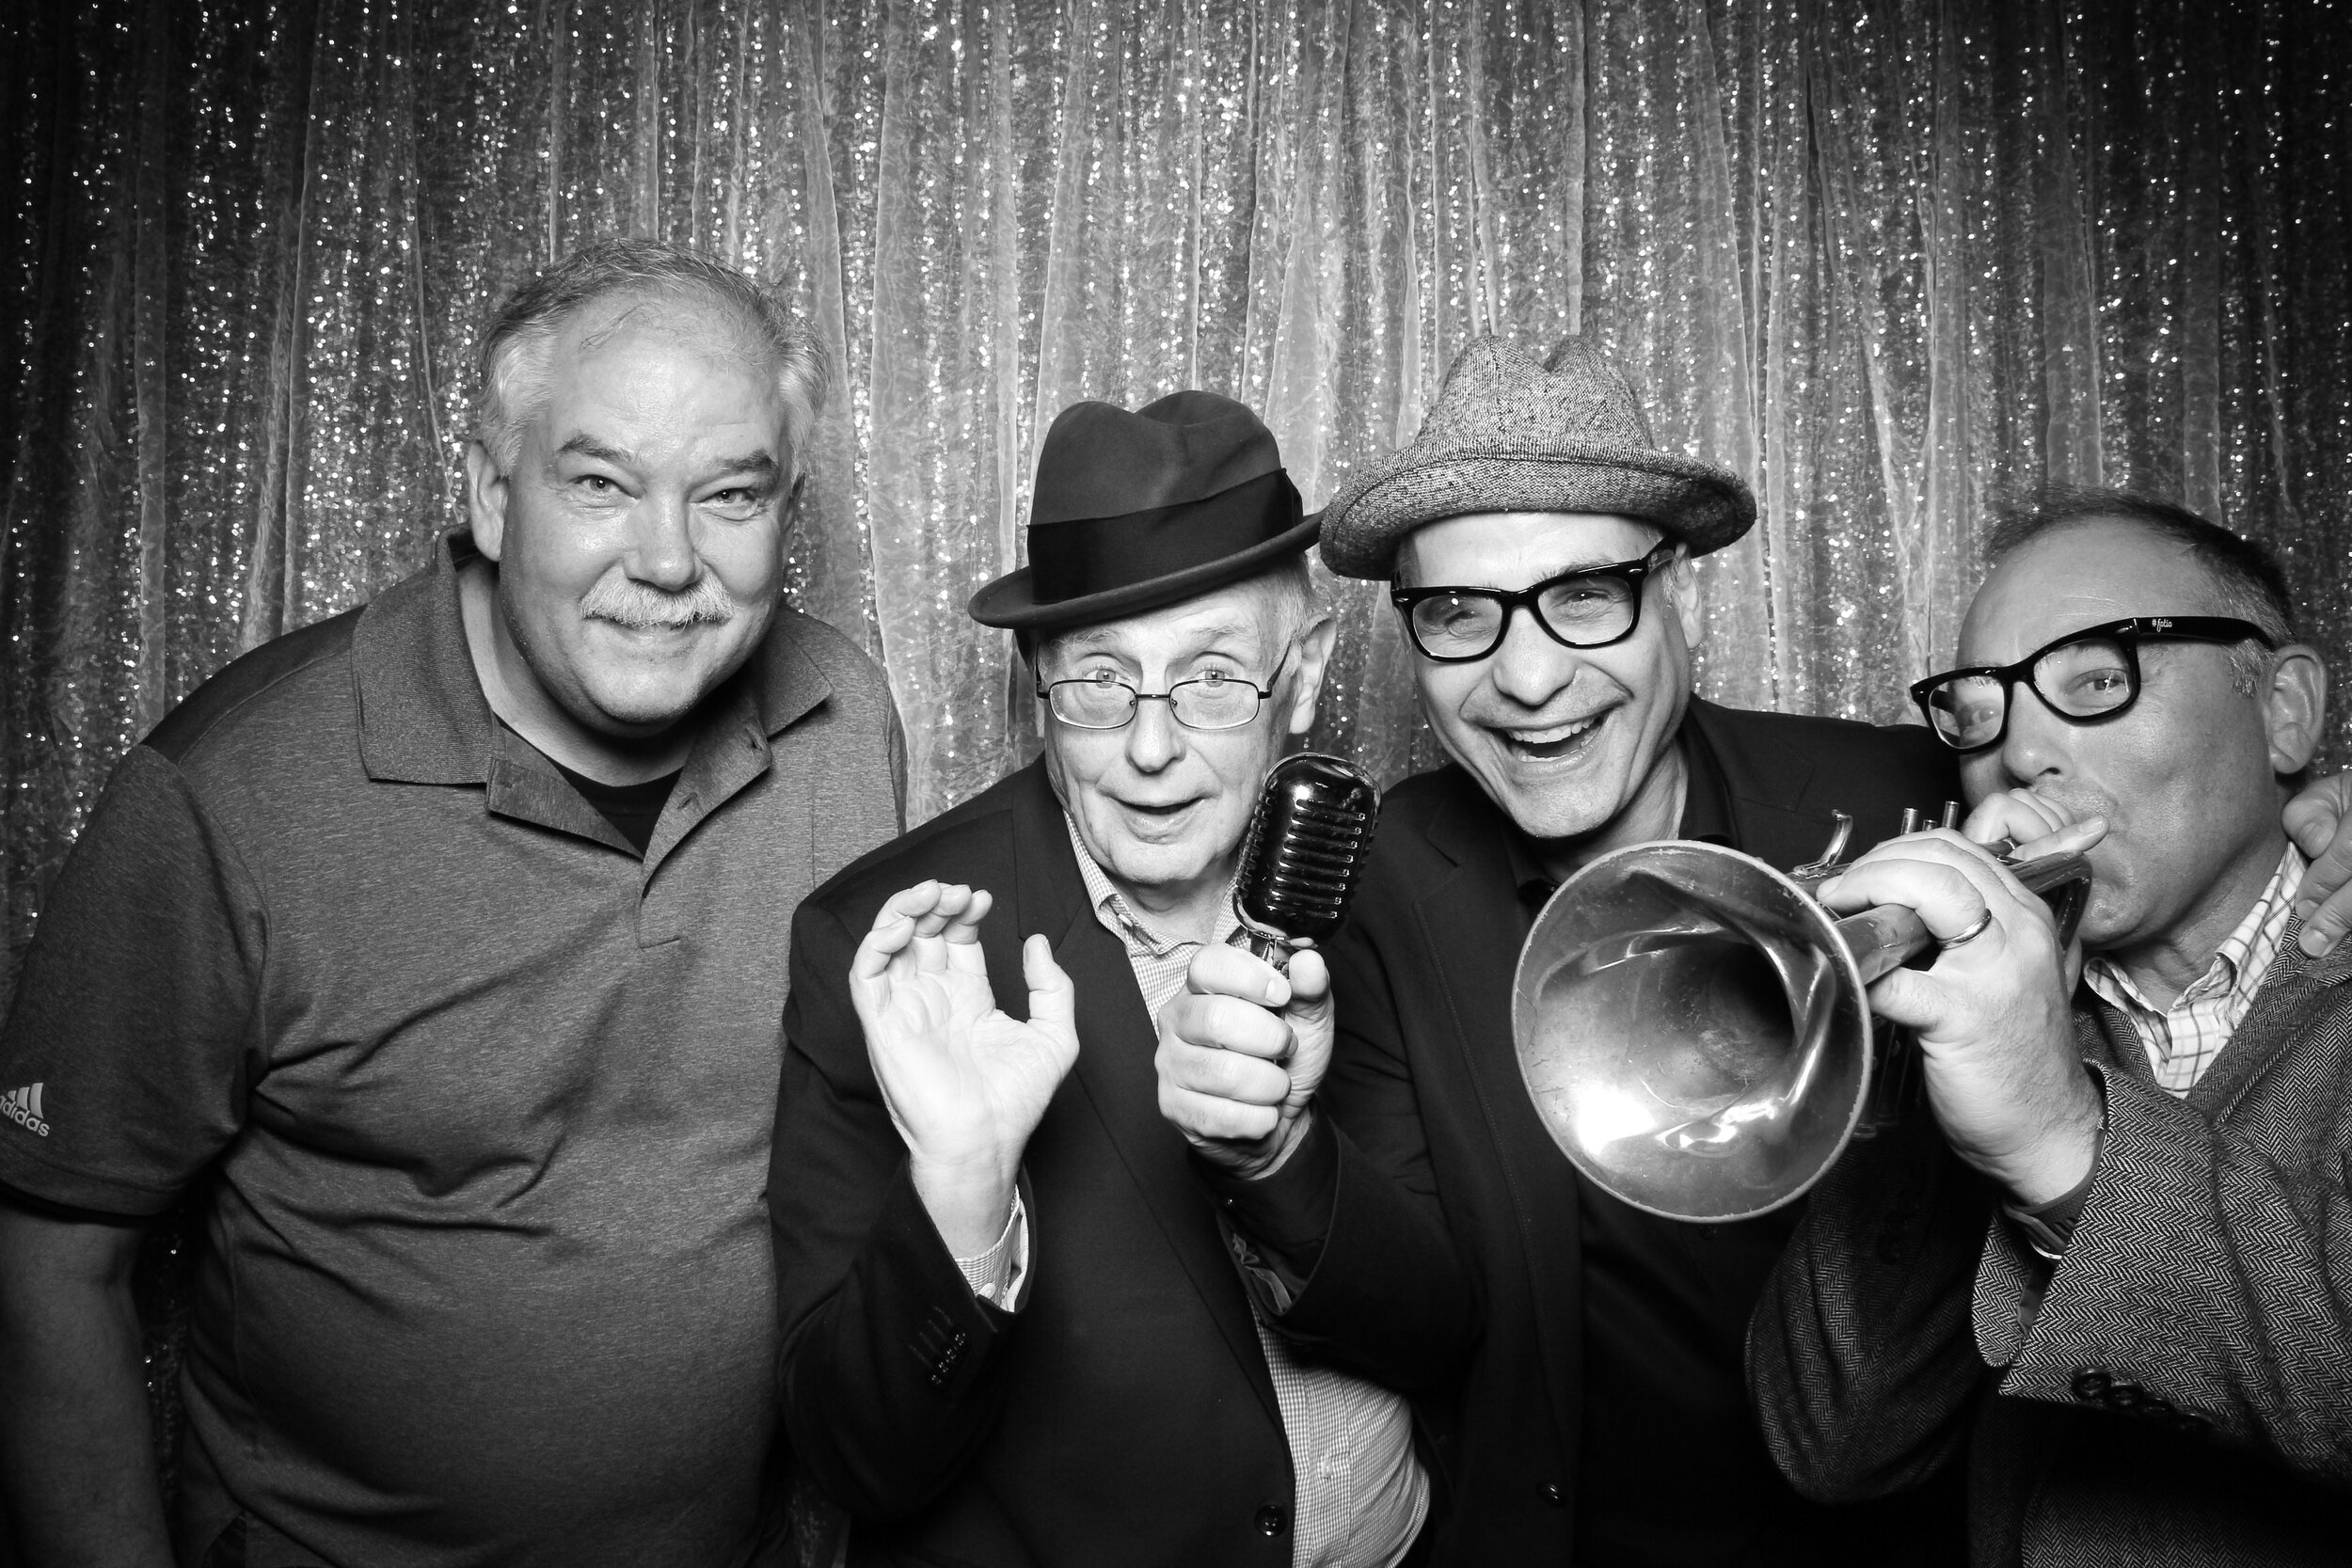 Chicago_Vintage_Wedding_Photobooth_House_of_Blues_14.jpg